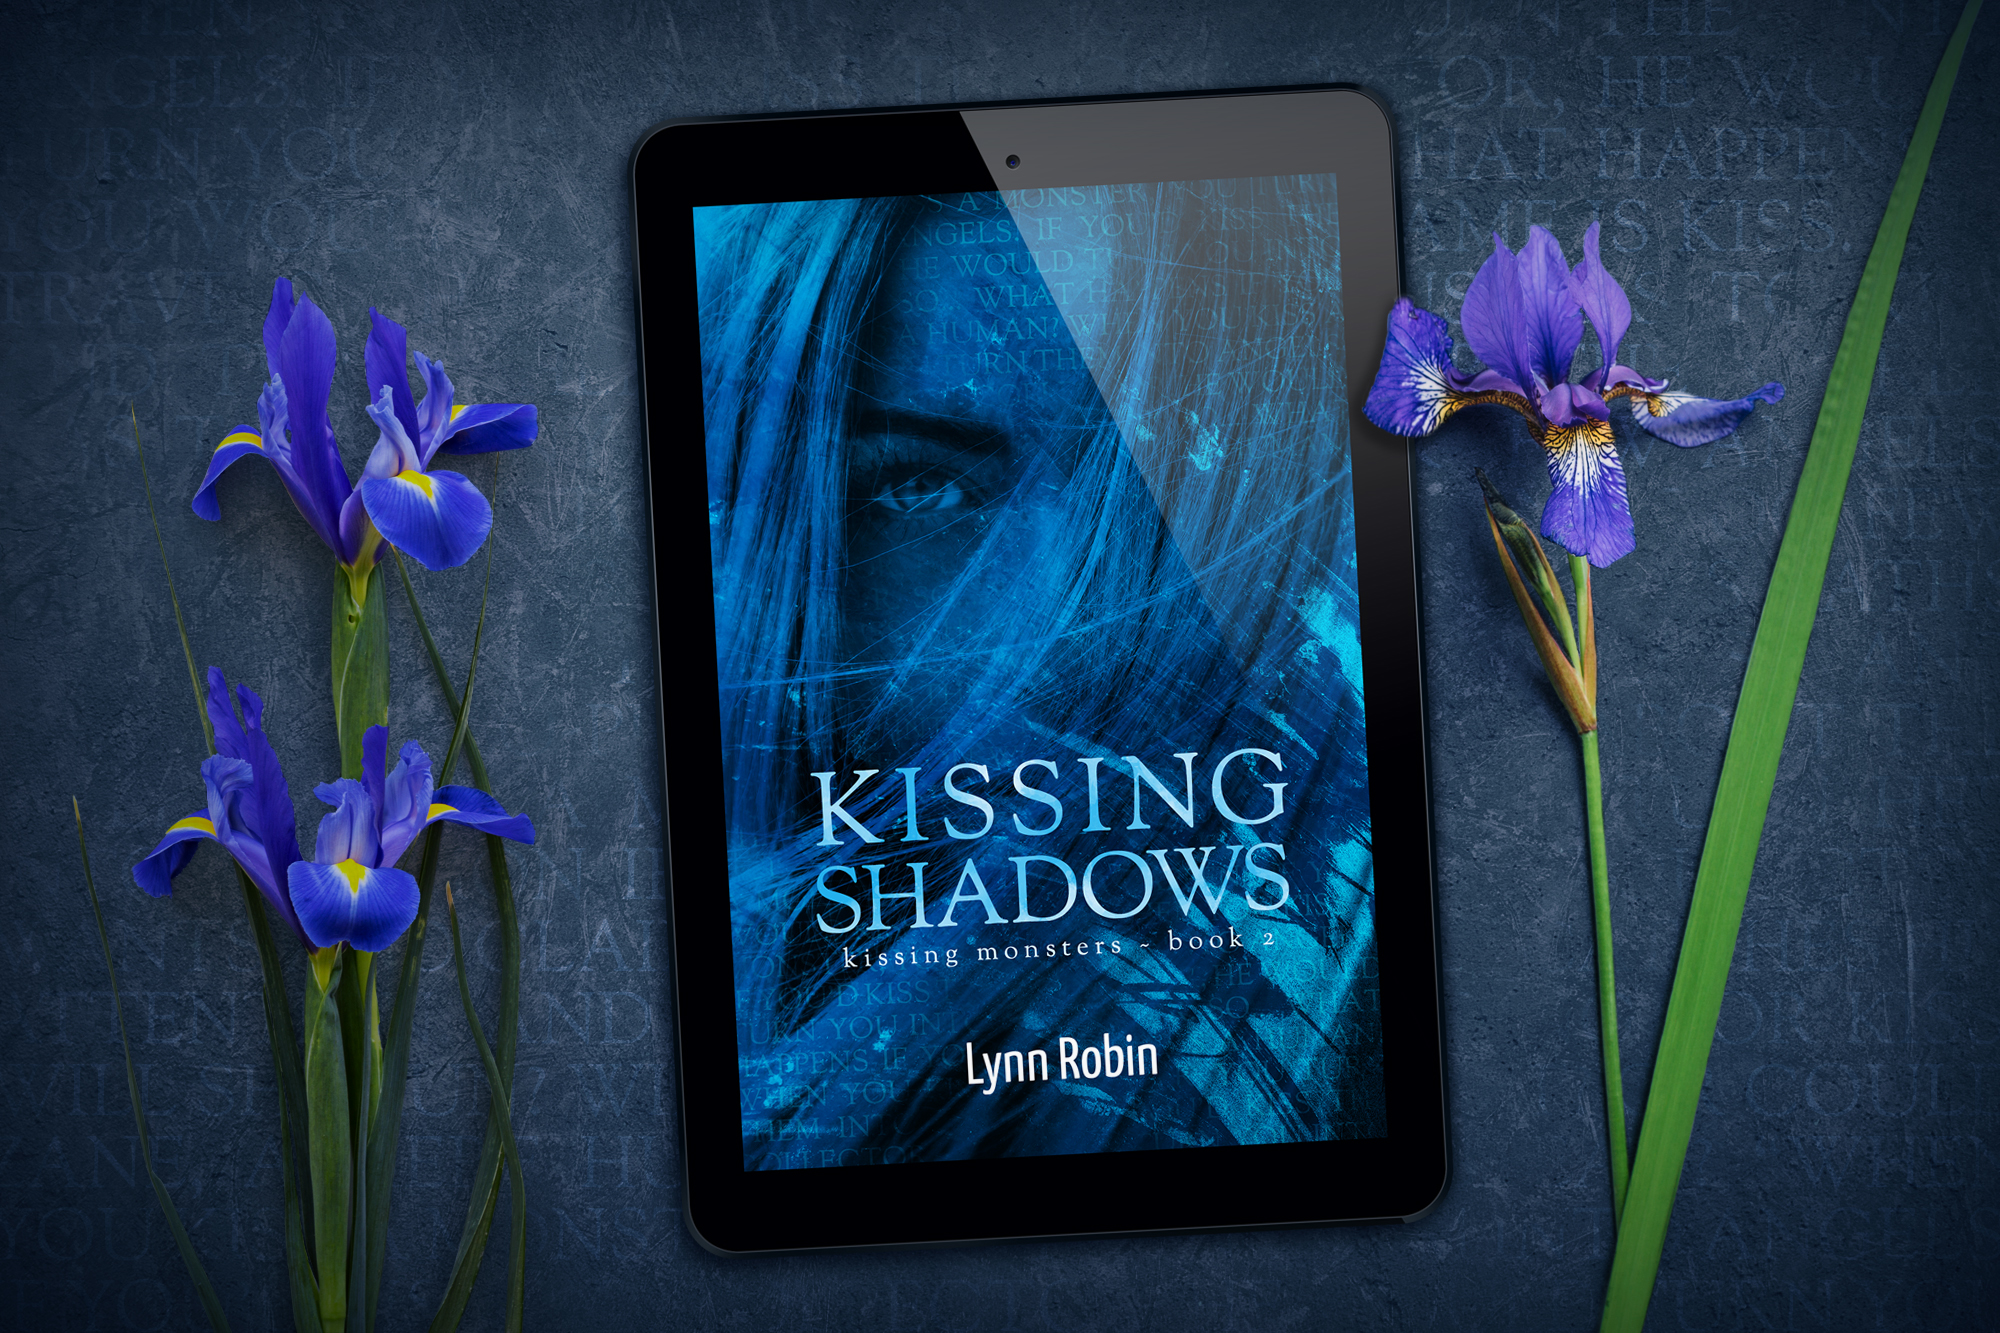 NEW RELEASE | OUT NOW: KISSING SHADOWS (Kissing Monsters 2)